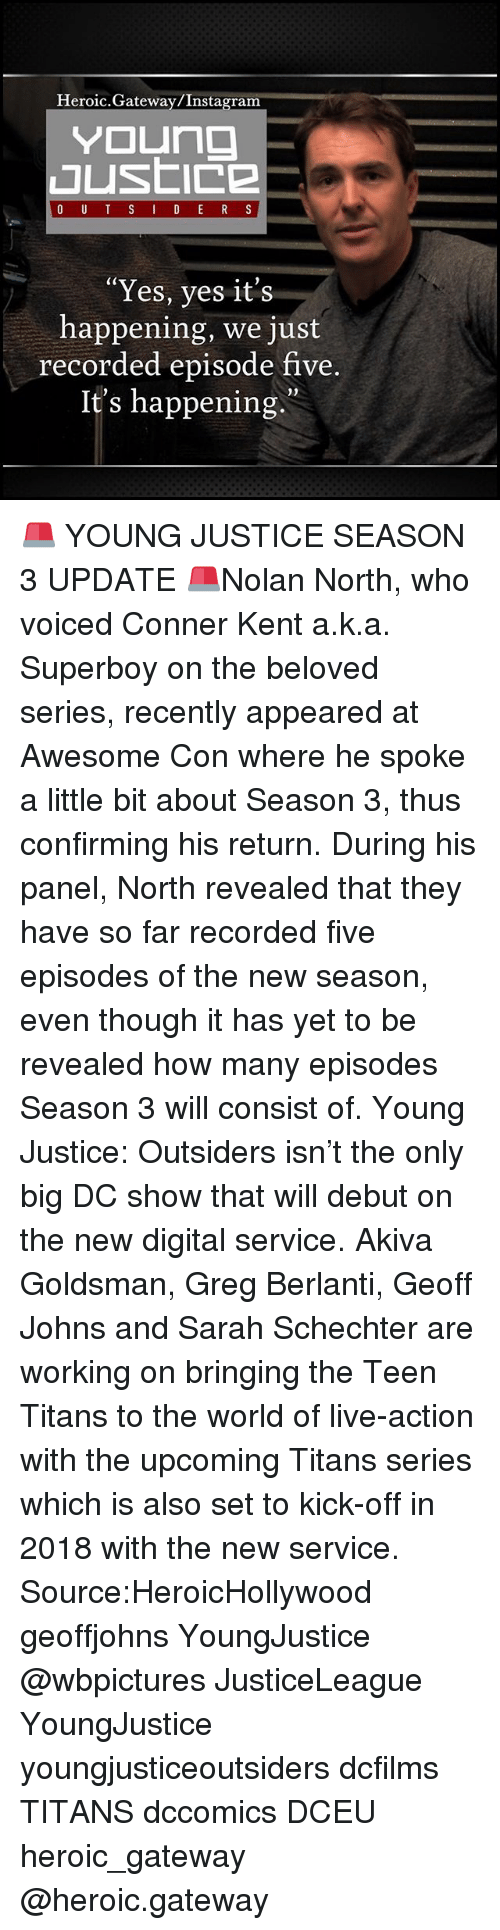 """Young Justice: Heroic.Gateway/Instagram  Yes, yes it's  happening, we just  recorded episode five  It's happening.""""  0) 🚨 YOUNG JUSTICE SEASON 3 UPDATE 🚨Nolan North, who voiced Conner Kent a.k.a. Superboy on the beloved series, recently appeared at Awesome Con where he spoke a little bit about Season 3, thus confirming his return. During his panel, North revealed that they have so far recorded five episodes of the new season, even though it has yet to be revealed how many episodes Season 3 will consist of. Young Justice: Outsiders isn't the only big DC show that will debut on the new digital service. Akiva Goldsman, Greg Berlanti, Geoff Johns and Sarah Schechter are working on bringing the Teen Titans to the world of live-action with the upcoming Titans series which is also set to kick-off in 2018 with the new service. Source:HeroicHollywood geoffjohns YoungJustice @wbpictures JusticeLeague YoungJustice youngjusticeoutsiders dcfilms TITANS dccomics DCEU heroic_gateway @heroic.gateway"""